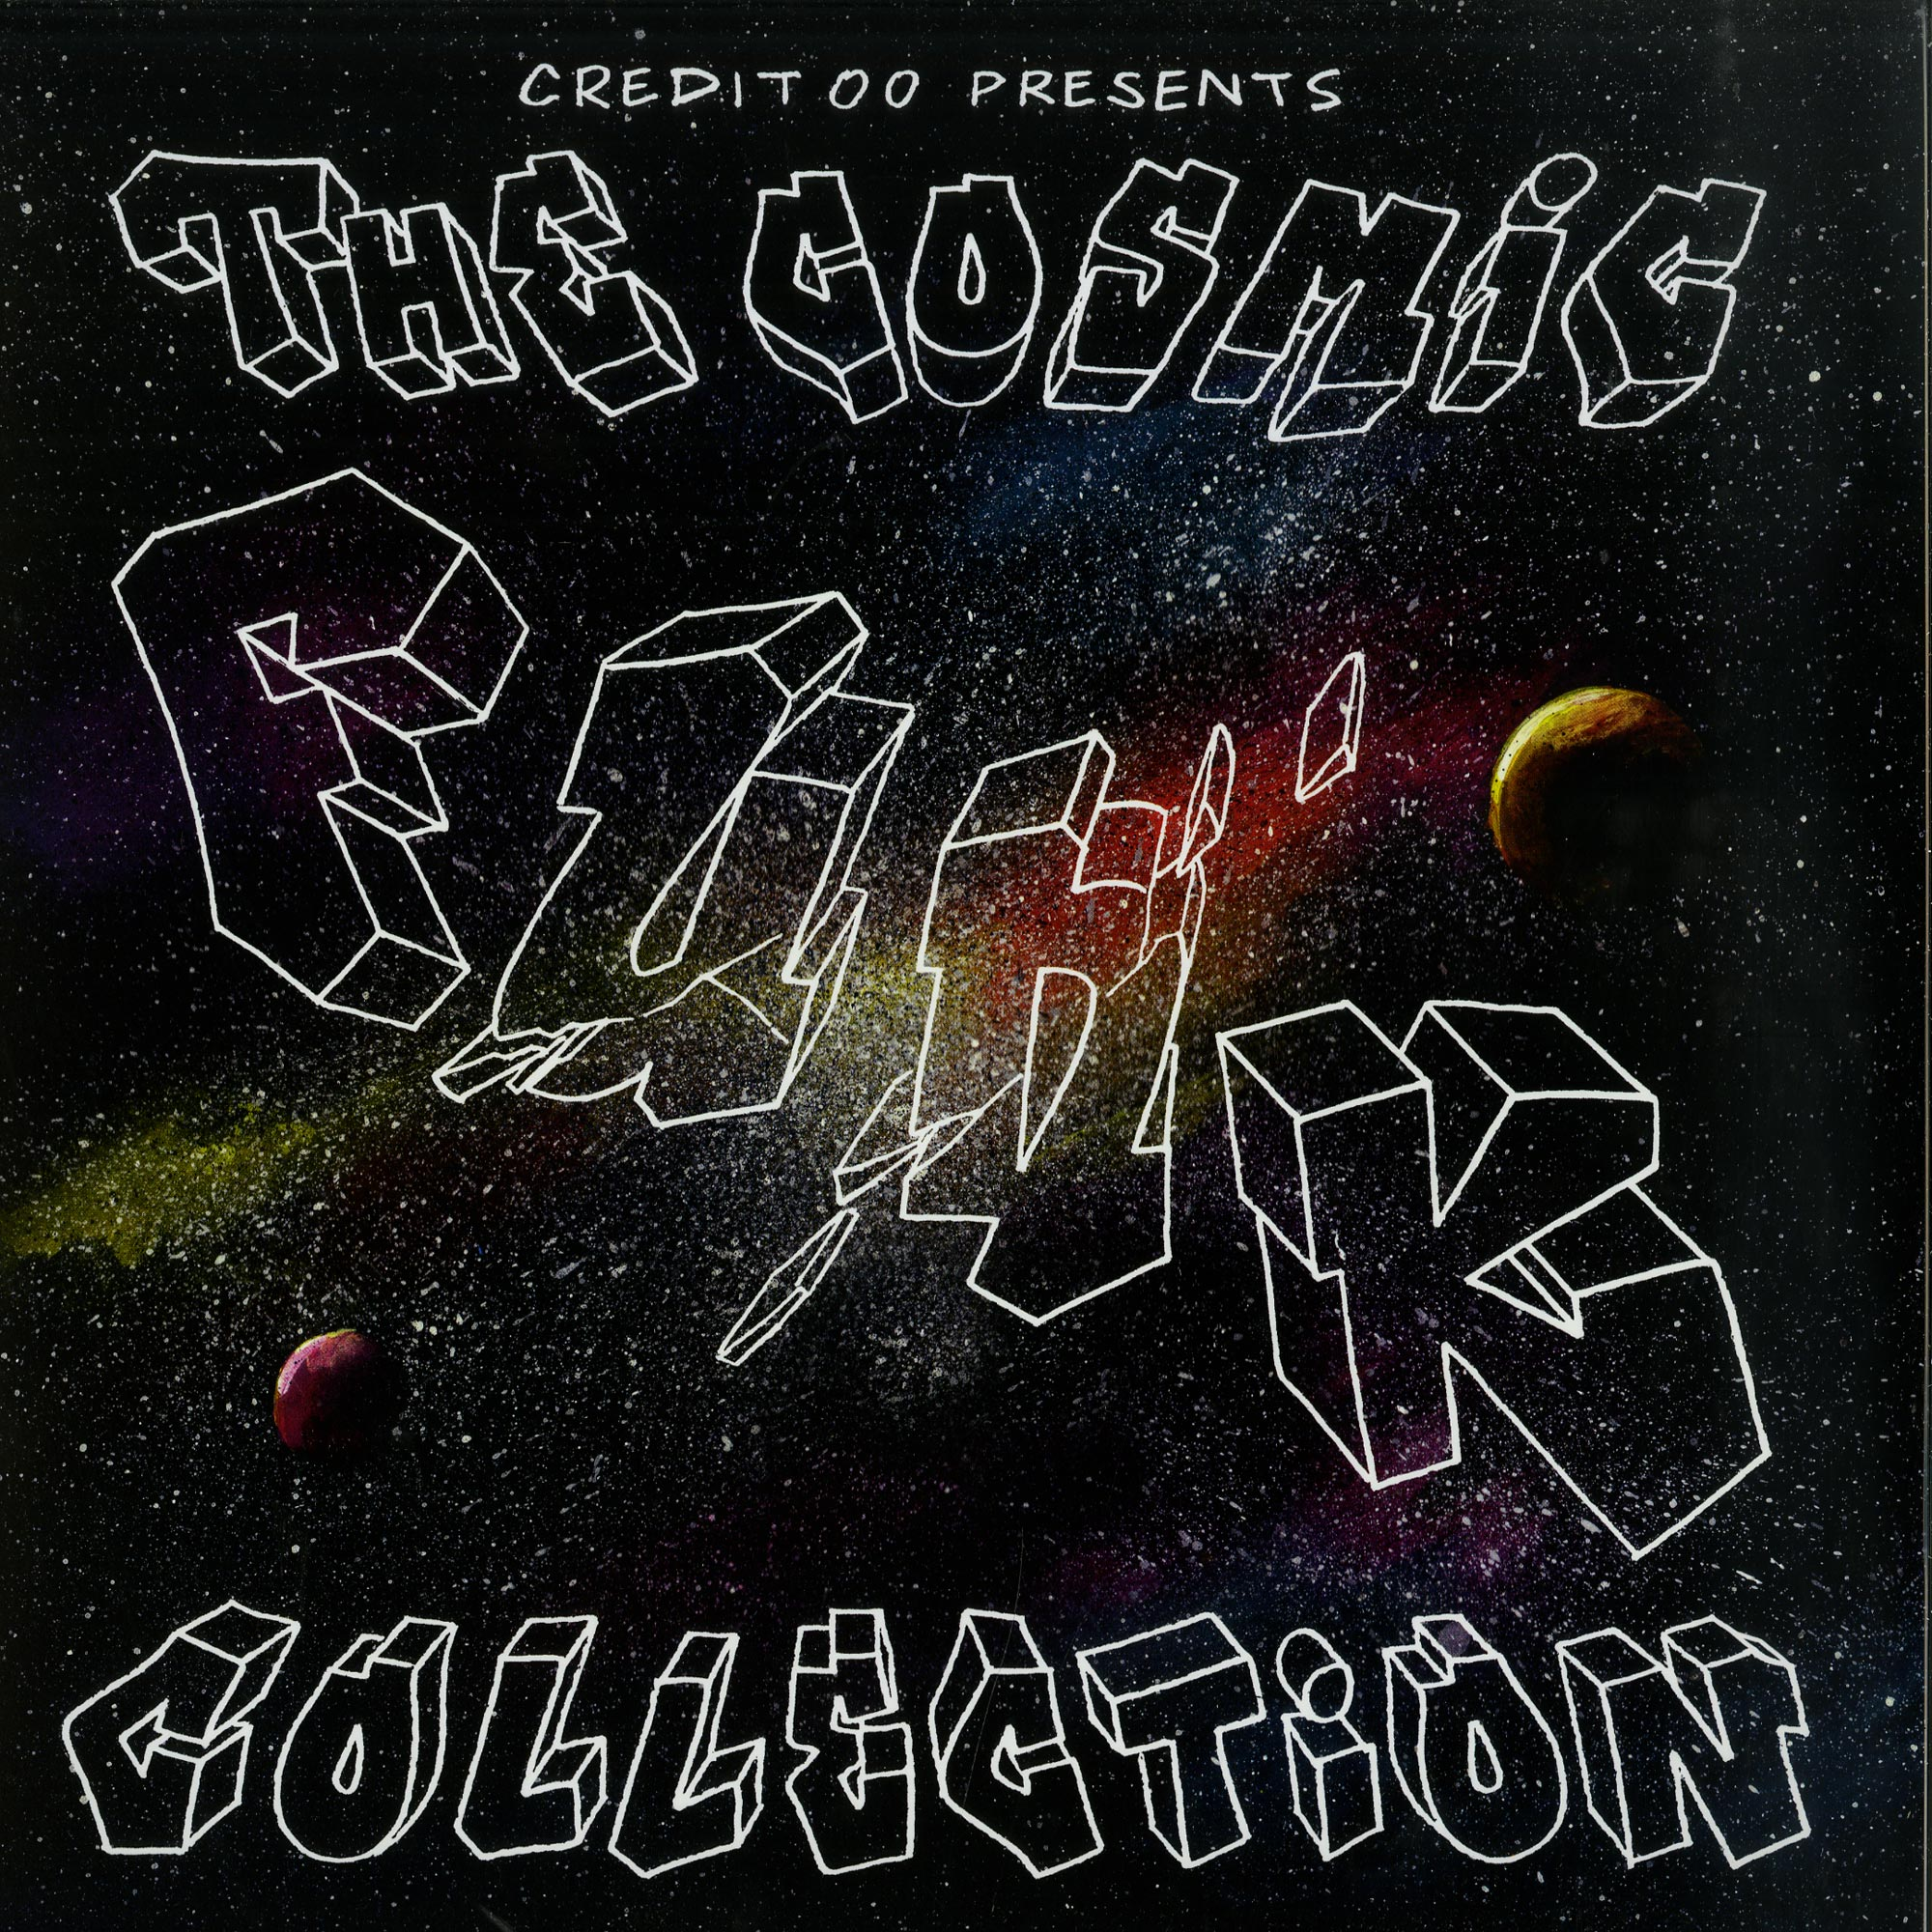 Credit 00 - THE COSMIC FUNK COLLECTION EP